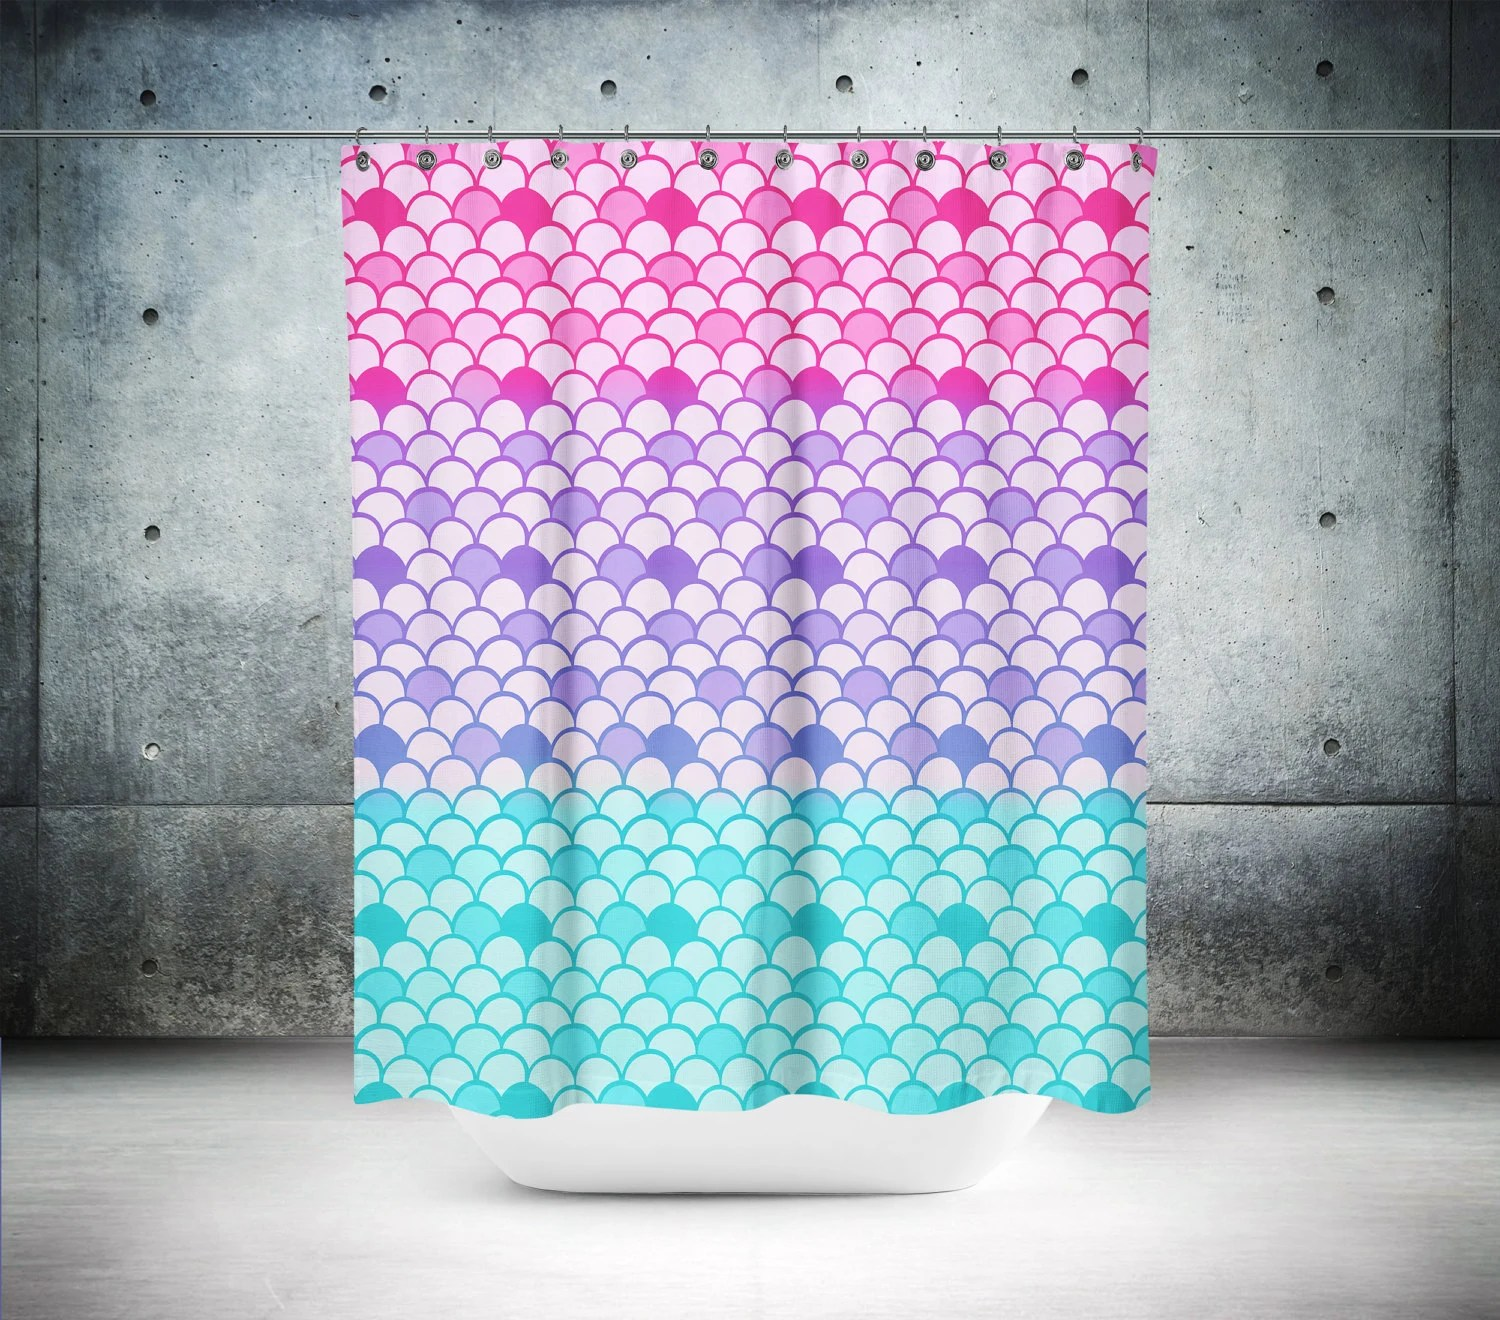 Mermaid Scale Shower Curtain Mermaid Scales Shower Curtain Optional Bath Mat Bathroom Set Pink Purple Aqua